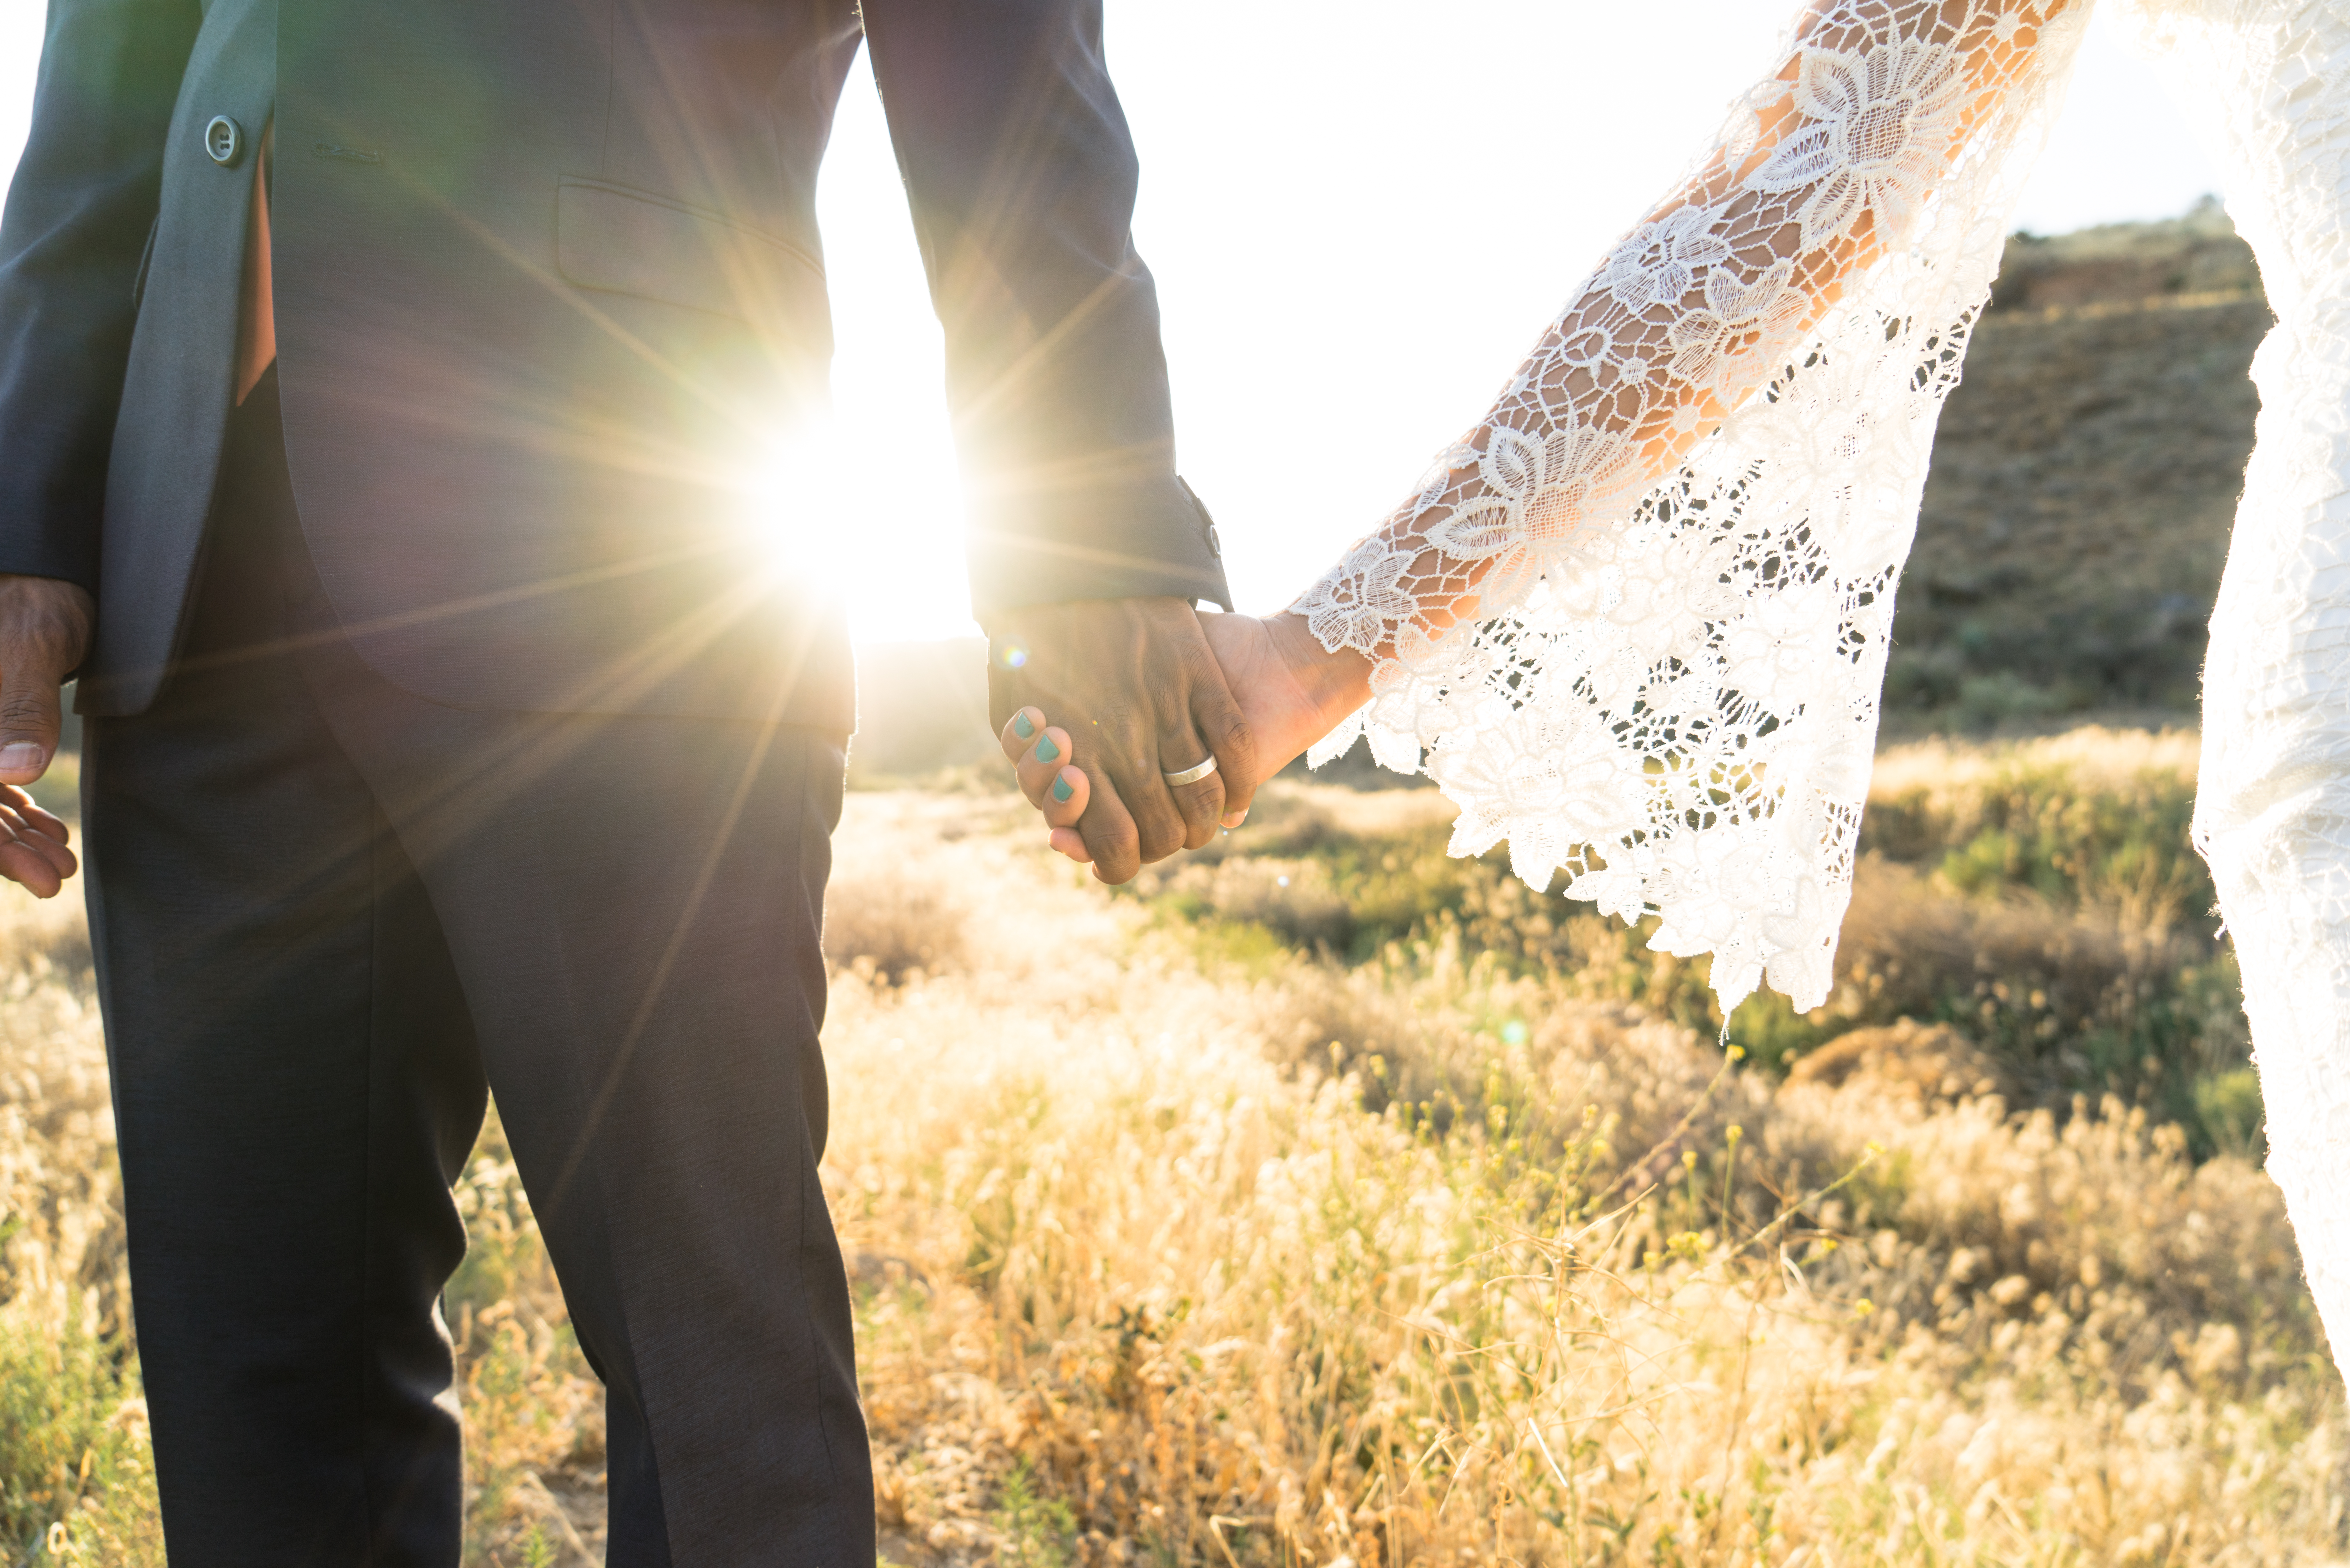 The Non-Negotiables: 6 Standards all Singles Should Keep